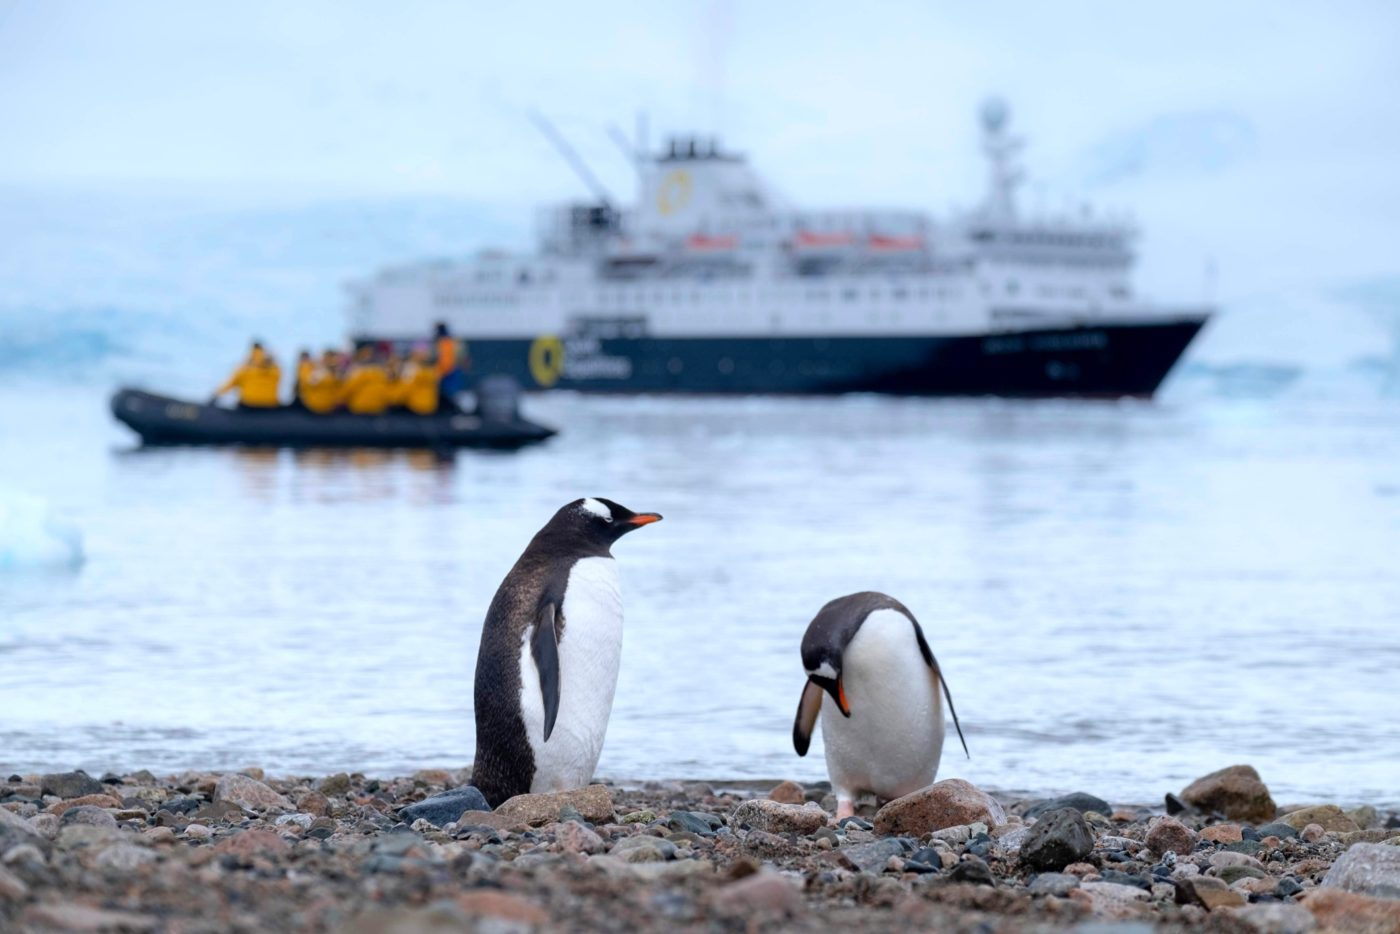 Antarctica Penguins and ship Credit Derek Oyen Unsplash